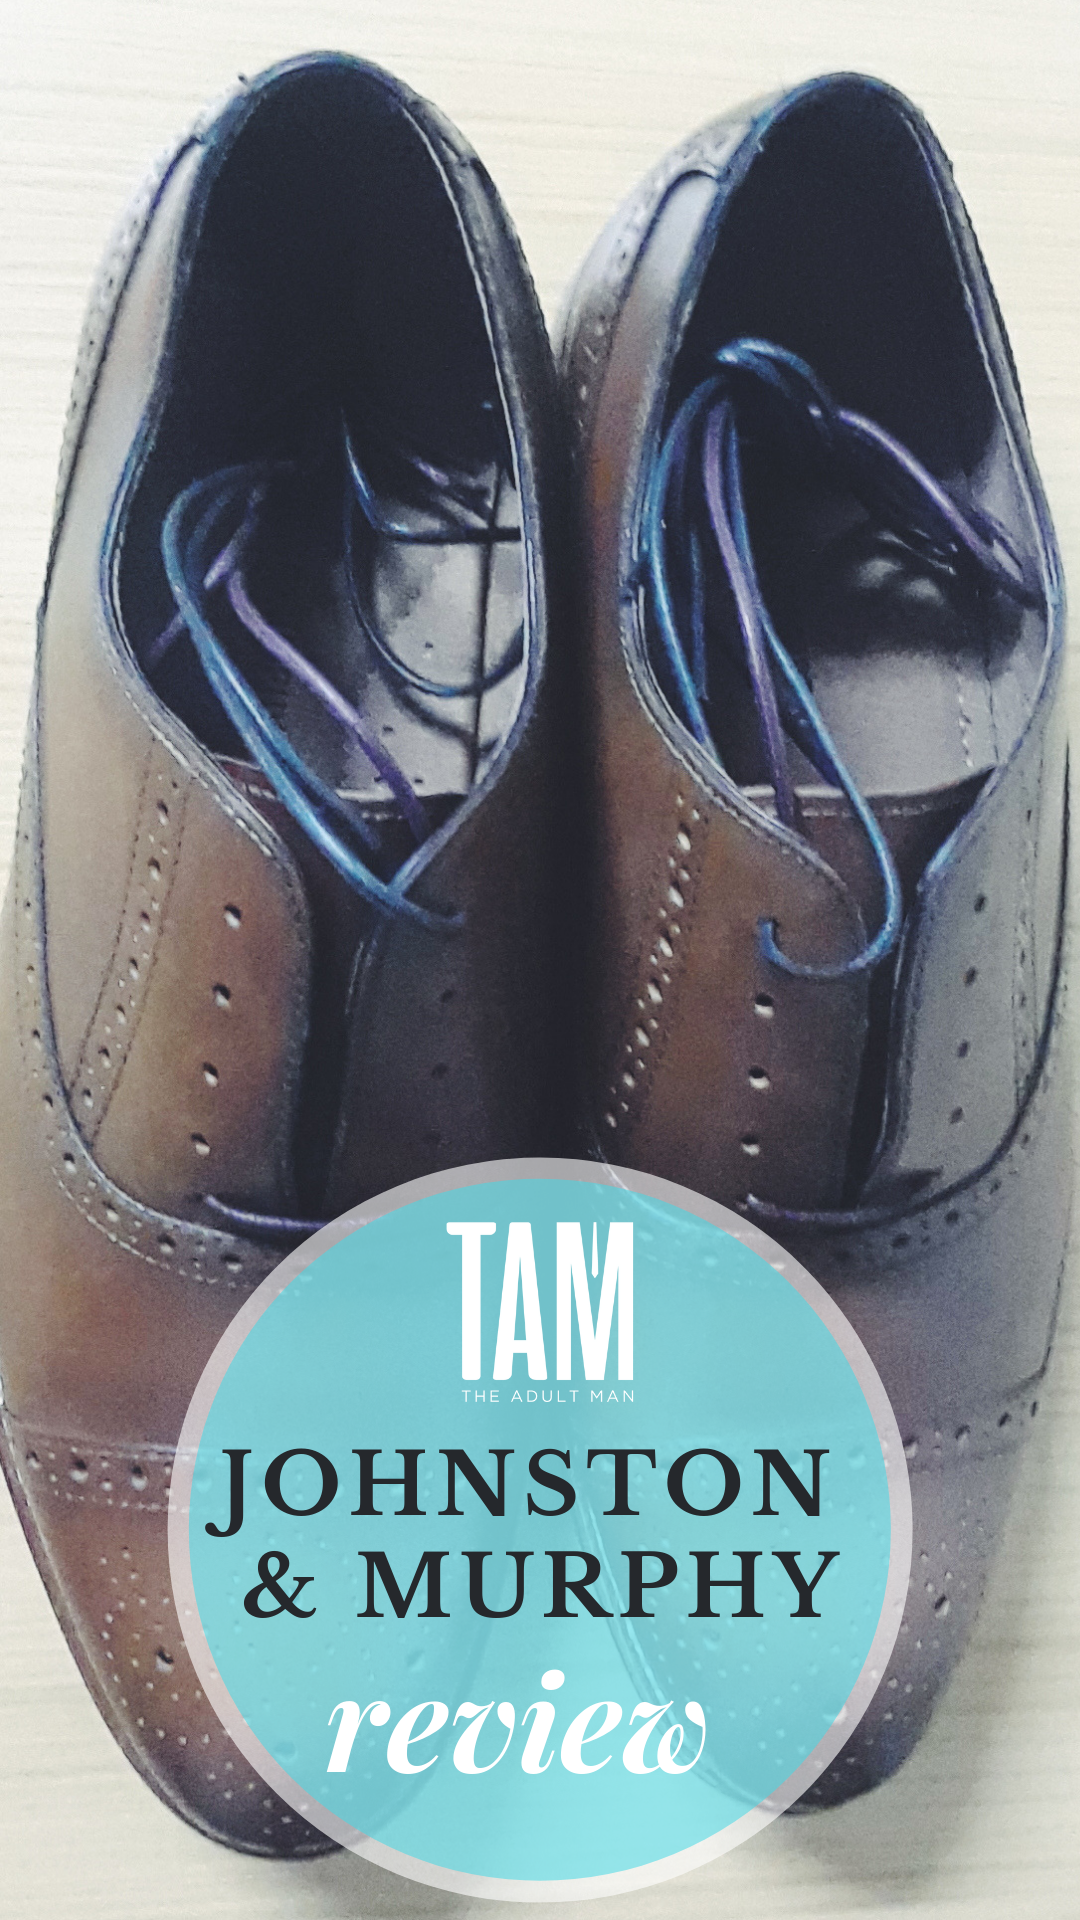 Johnston And Murphy Shoes Review: Good